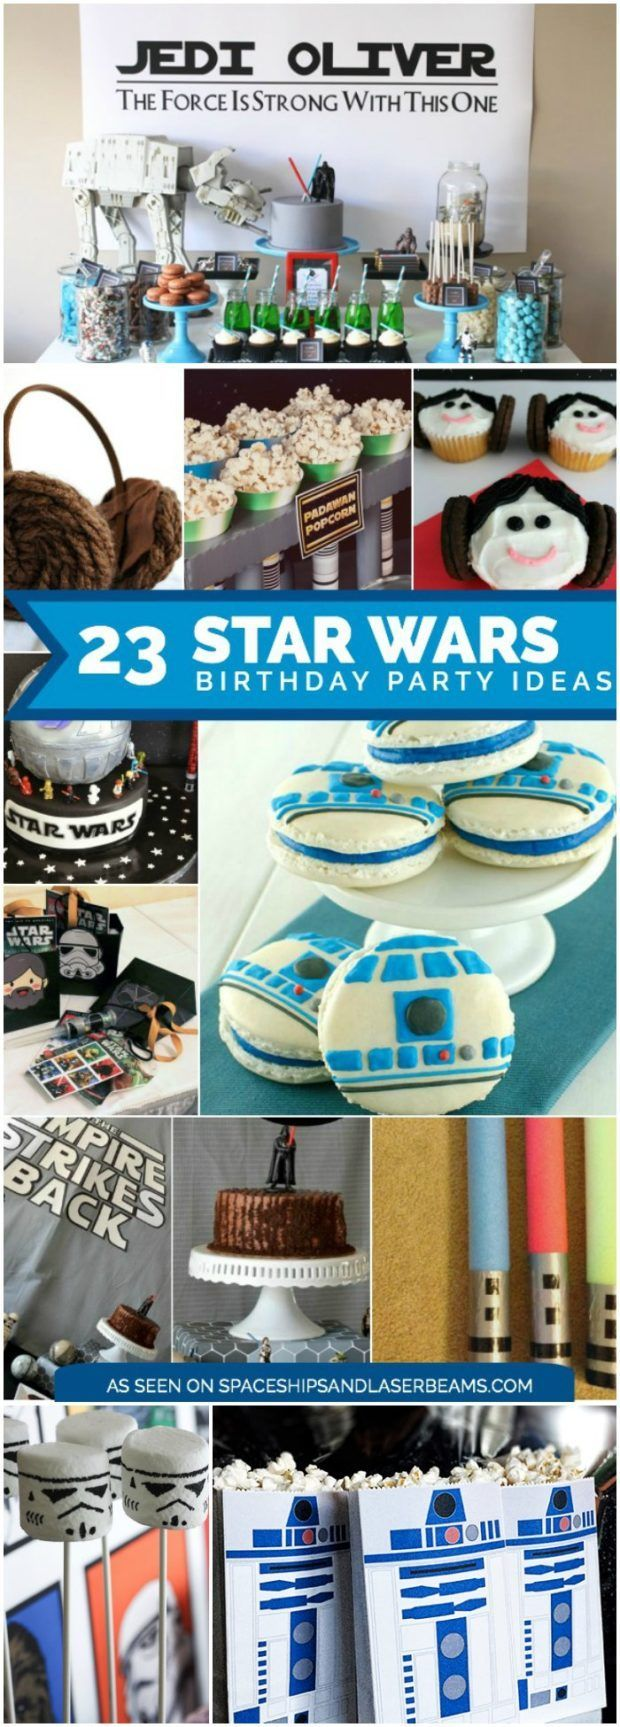 Star Wars Birthday Party Ideas including party supplies, decorations, cakes, cupcakes, sweets, games and more via @spaceshipslb